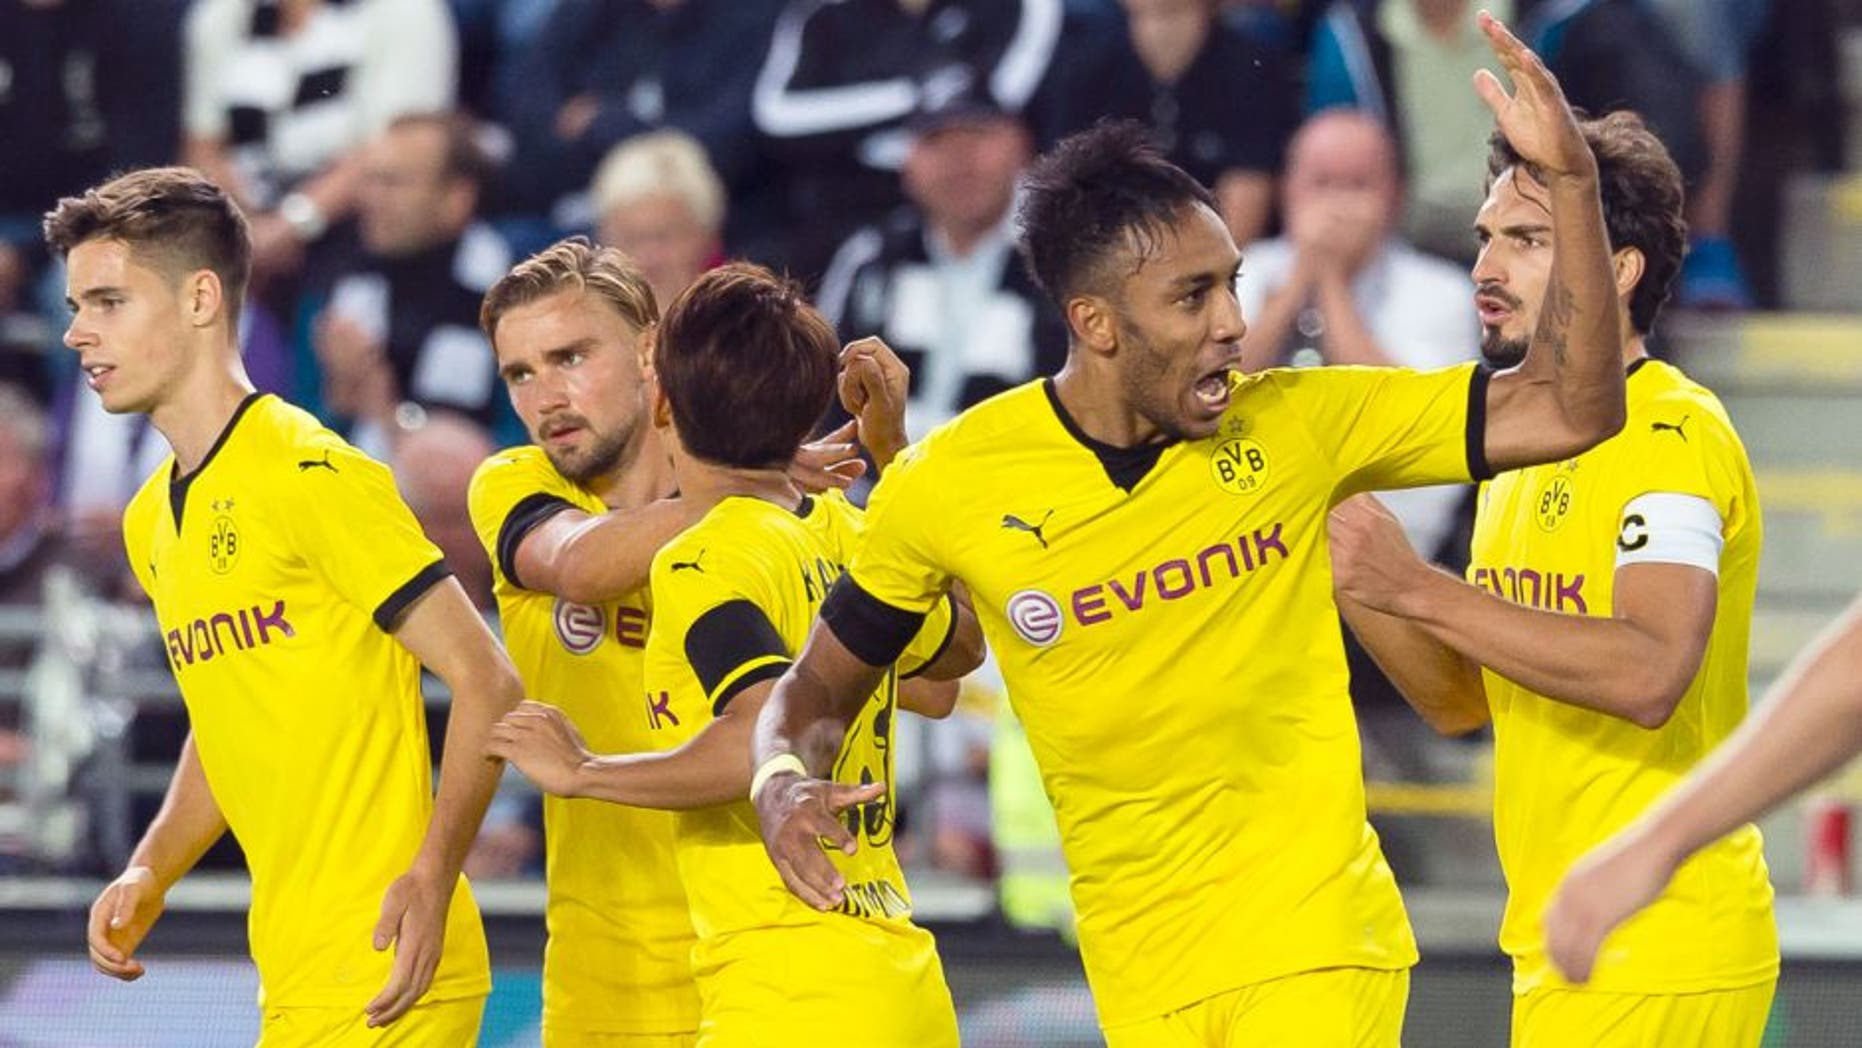 SKIEN, NORWAY - AUGUST 20: Pierre-Emerick Aubameyang of Borussia Dortmund celebrates scoring to make it 3:3 during the UEFA Europa League: Third Qualifying Round 1st Leg match between Wolfsberg and Borussia Dortmund at Skagerrak-Arena on August 20, 2015 in Skien, Norway. (Photo by Alexandre Simoes/Borussia Dortmund/Getty Images)